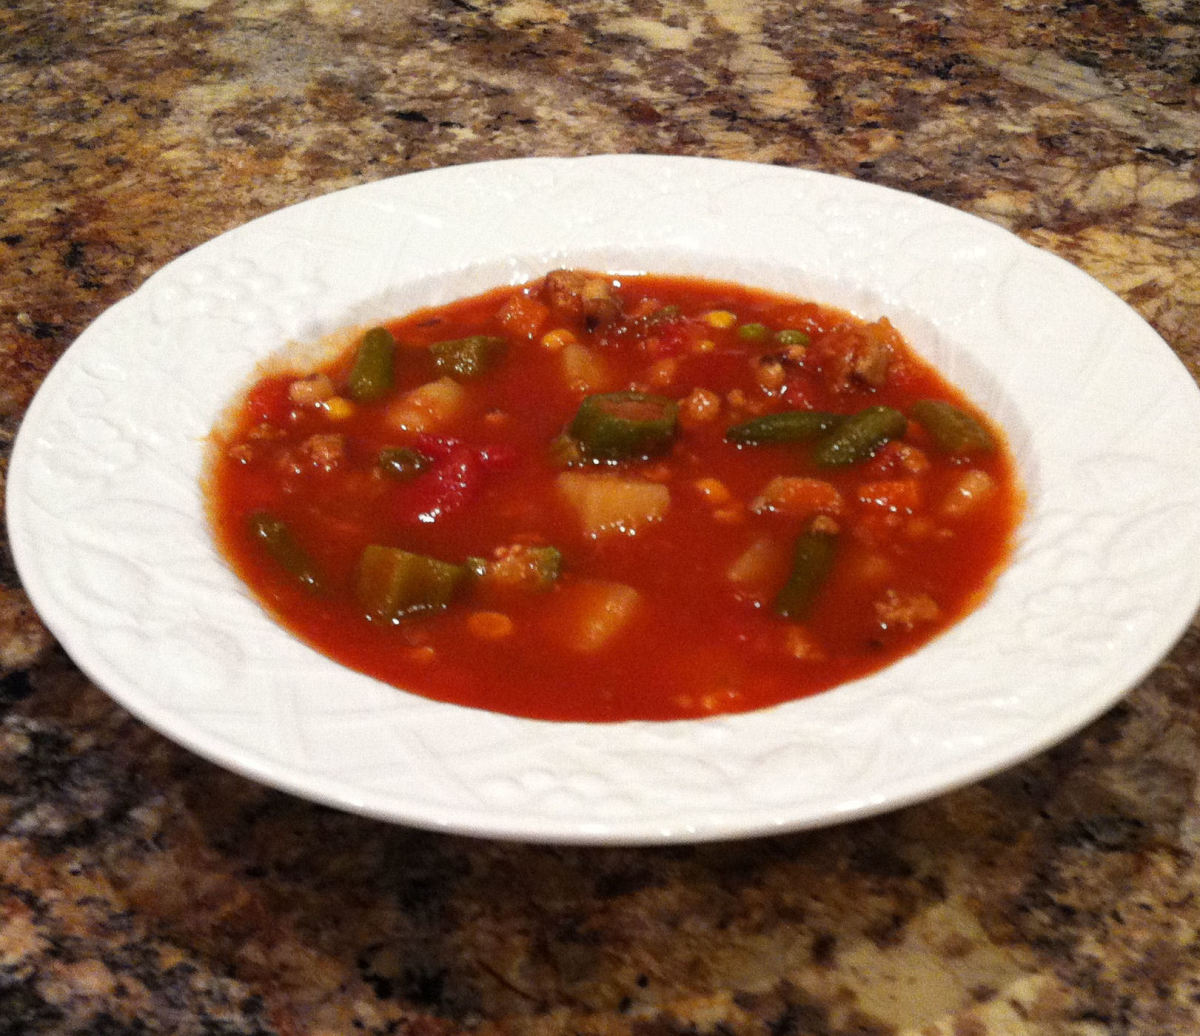 My homemade vegetable soup. I believe this batch included ground turkey, but you can easily make this vegetarian.